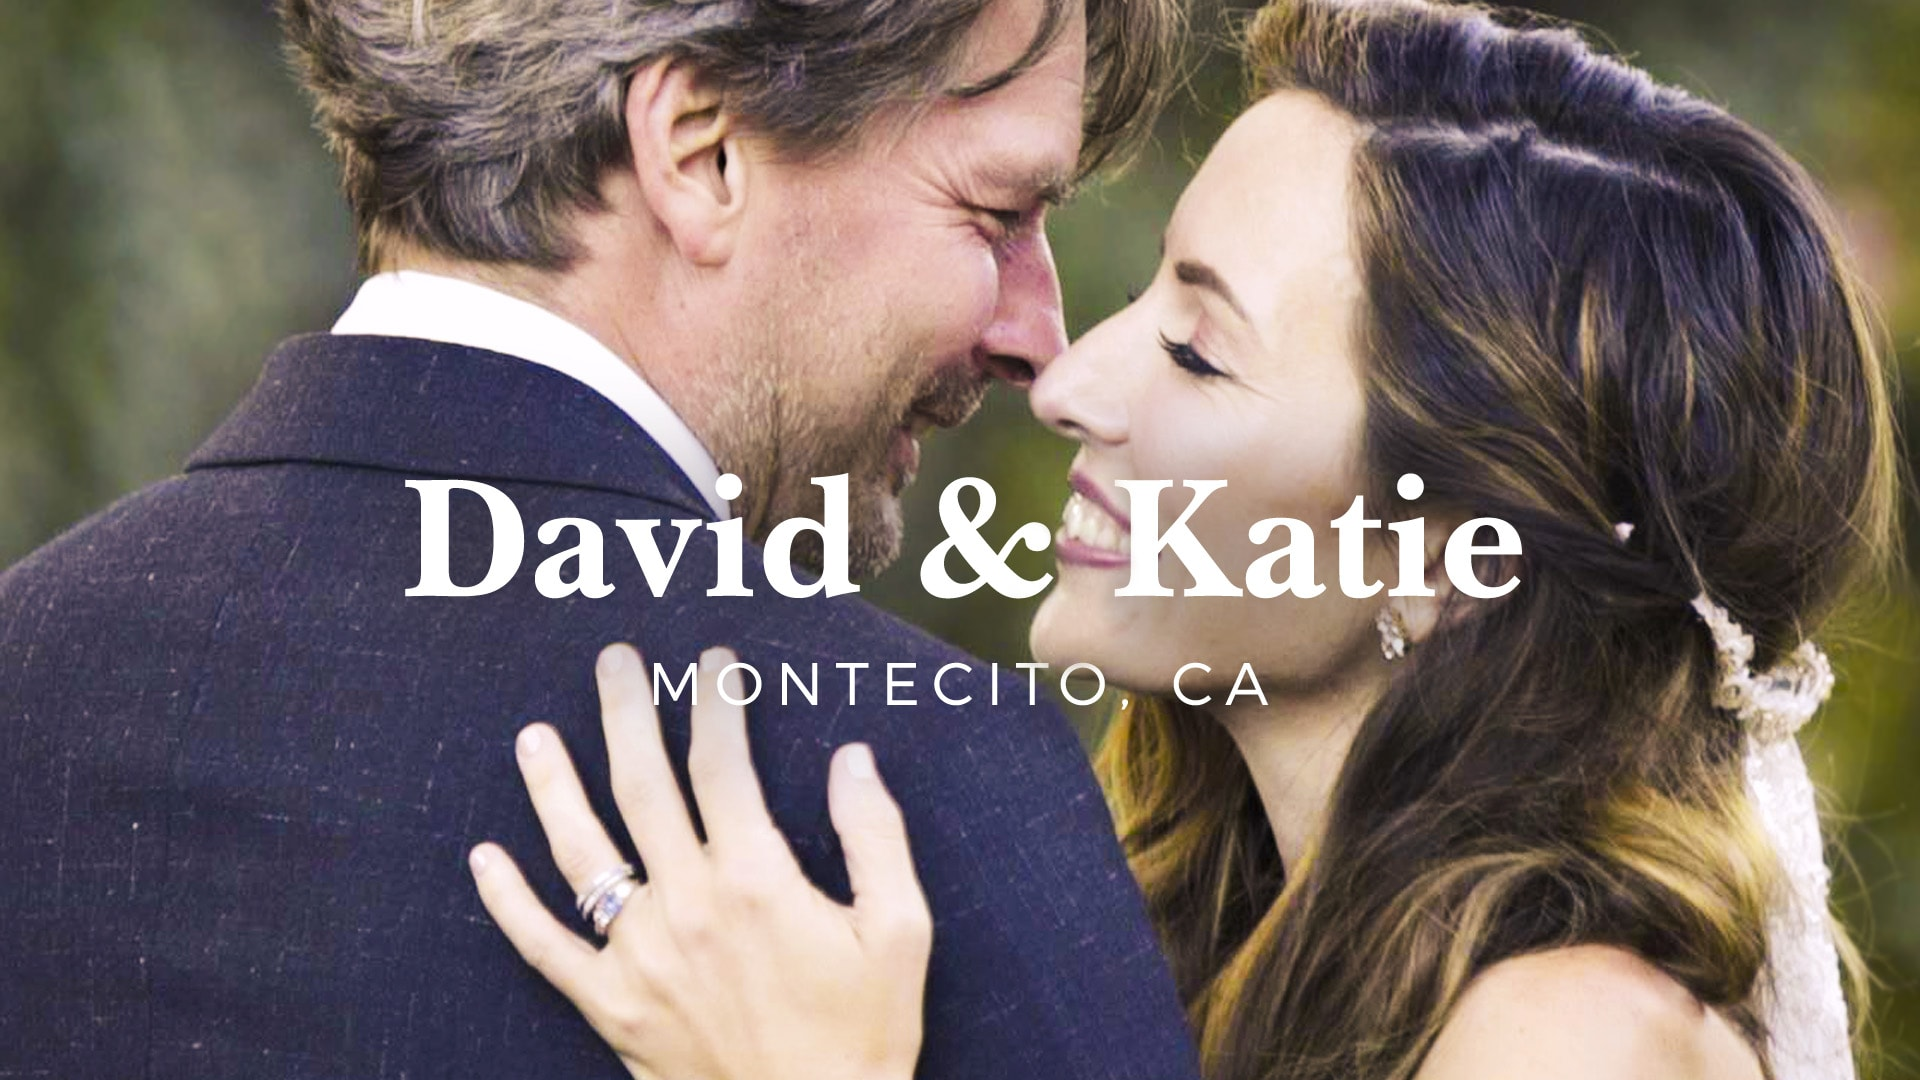 David & Katie Steele